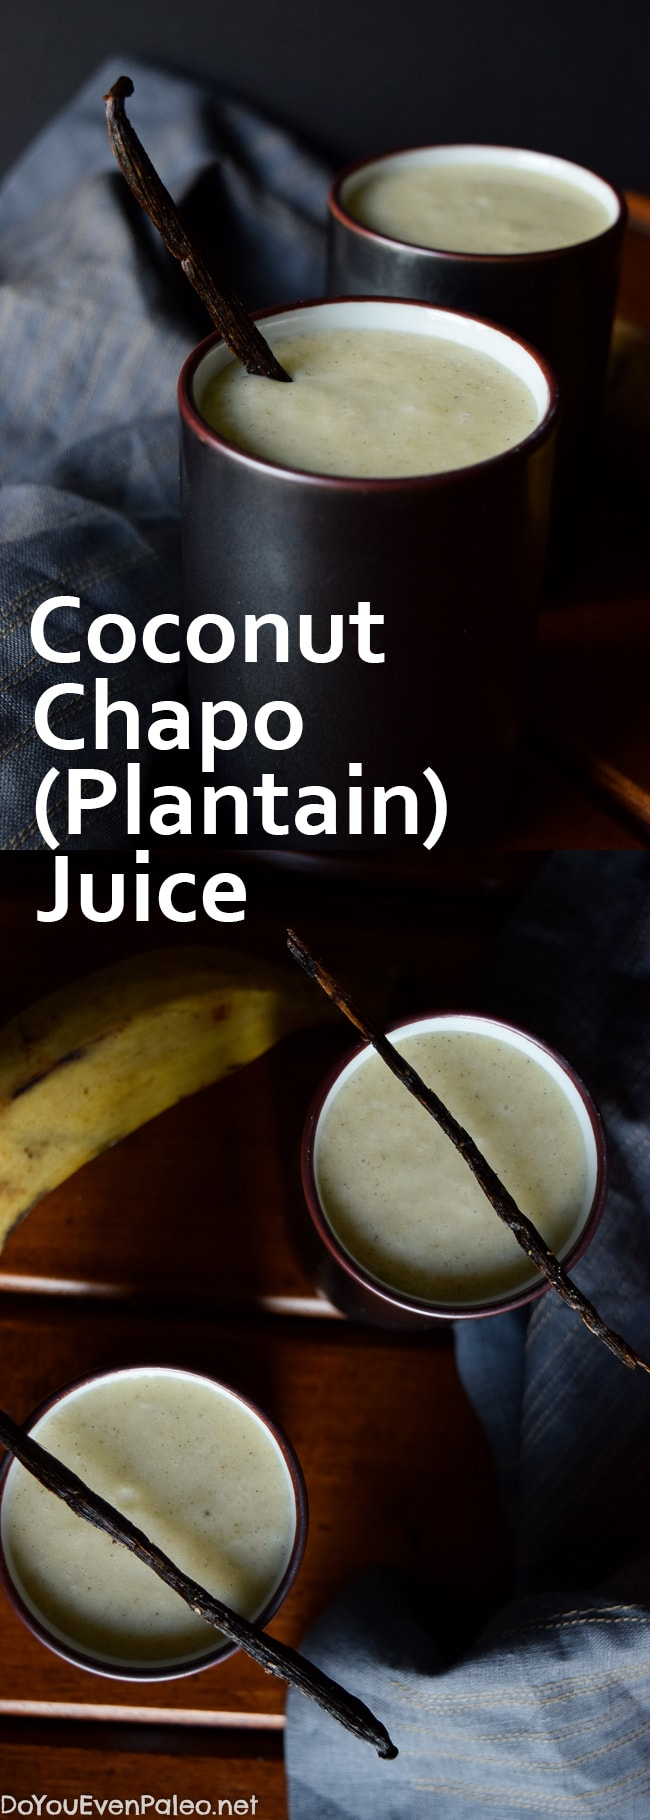 Coconut Chapo (Plantain) Juice | DoYouEvenPaleo.net - traditionally made with water, sugar, and plantains, I put my own spin on chapo juice by caramelizing the plantains and blending with coconut milk. Thick, creamy, and refreshing!